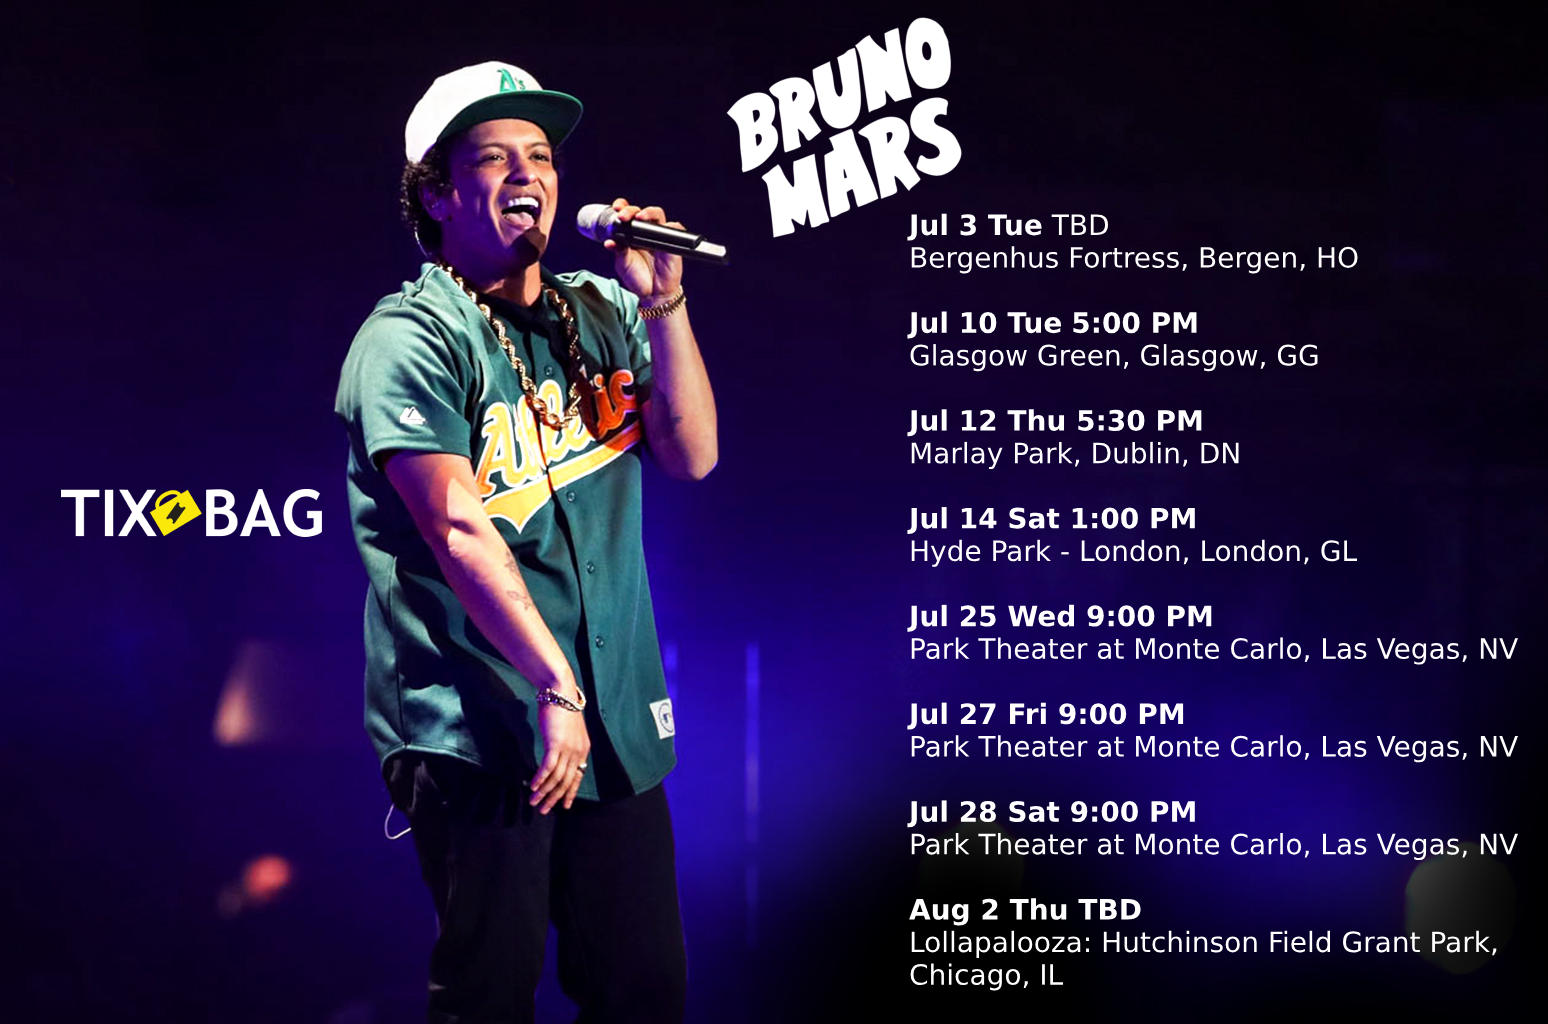 Bruno Mars Upcoming Tour Dates  List of all Bruno Mars